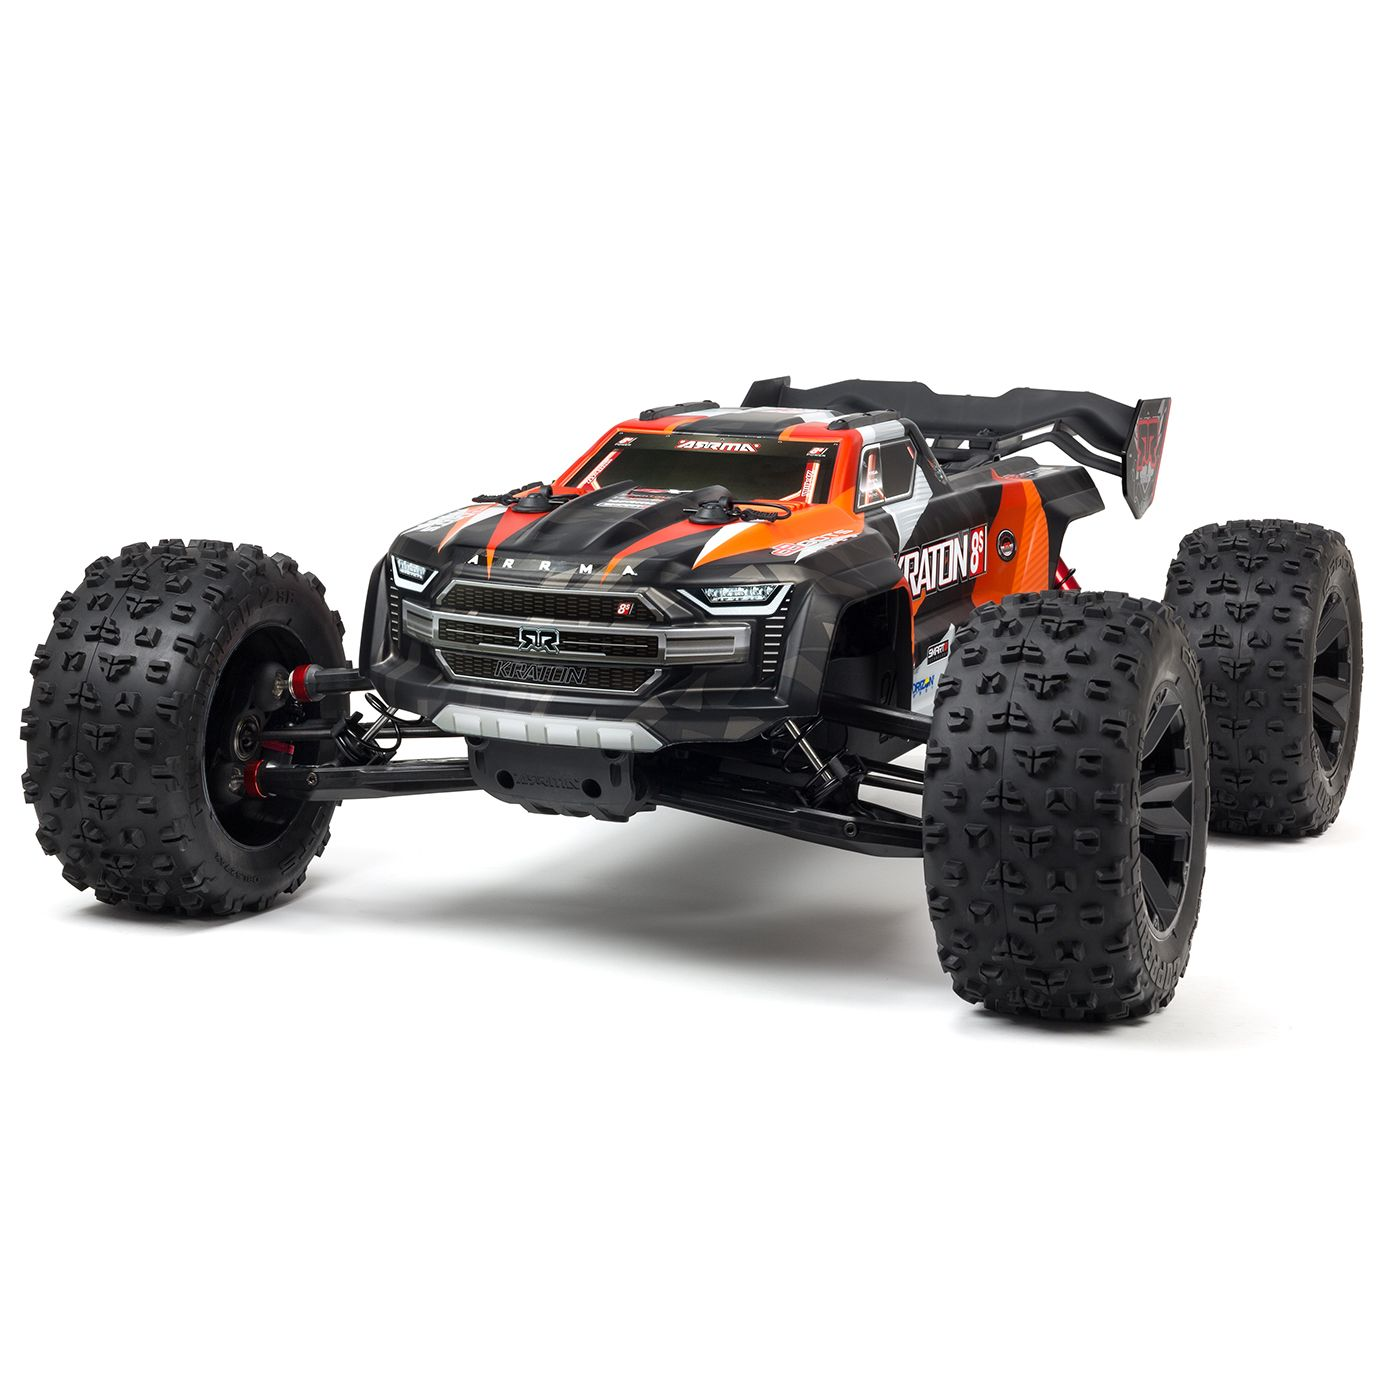 Big Daddy Kraton: Meet ARRMA's Latest 1/5-scale Speed Monster Truck